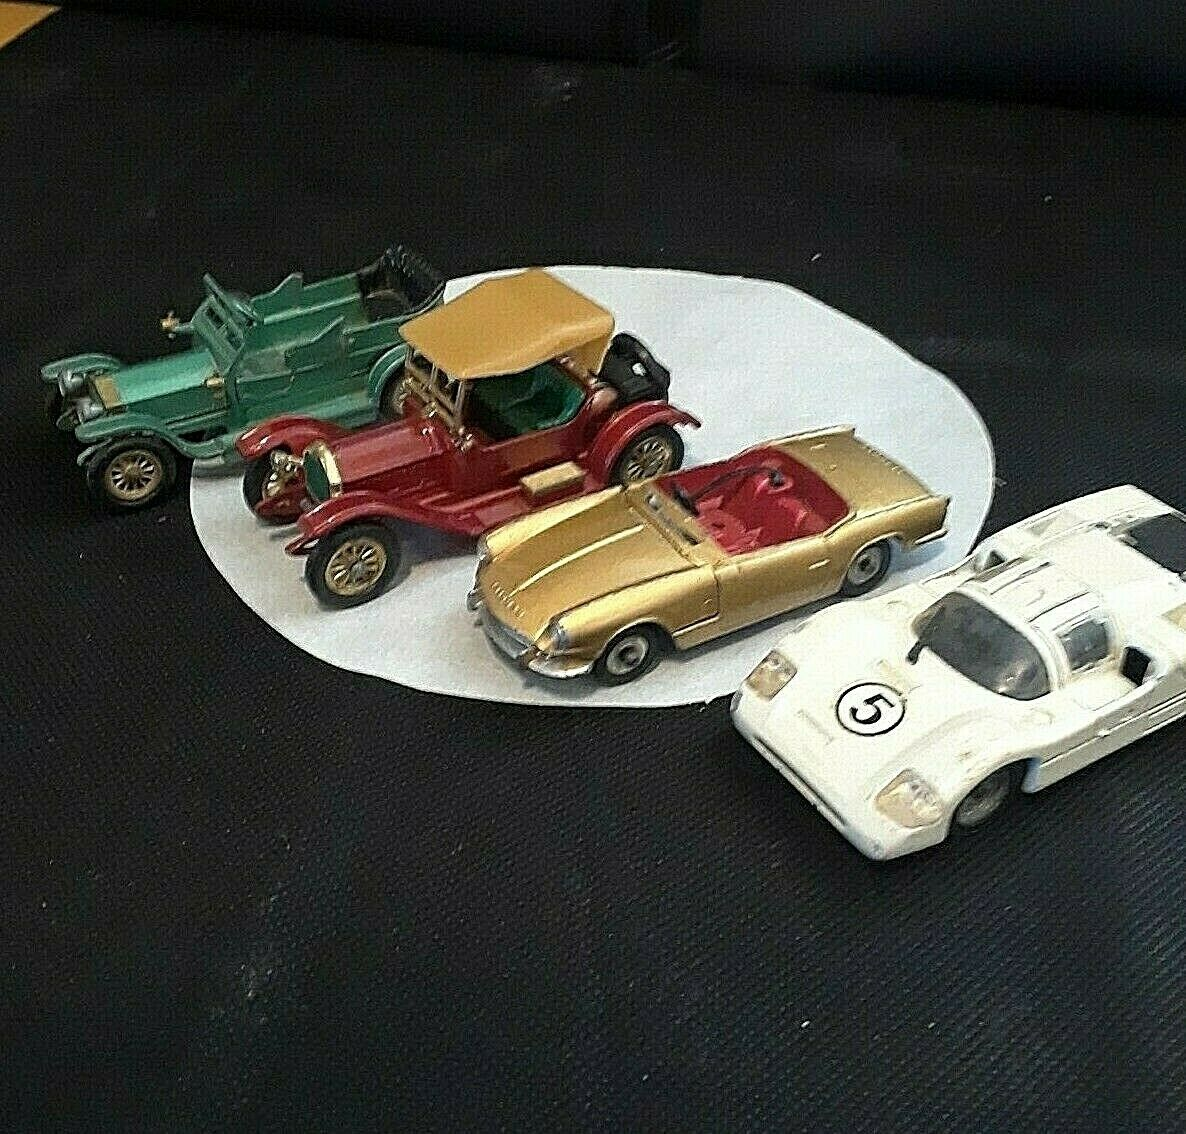 VNTG Toy Cars 1914 Stutz 1907 Rolls Royce  Chapparal Made in ENGLAND & FRANCE